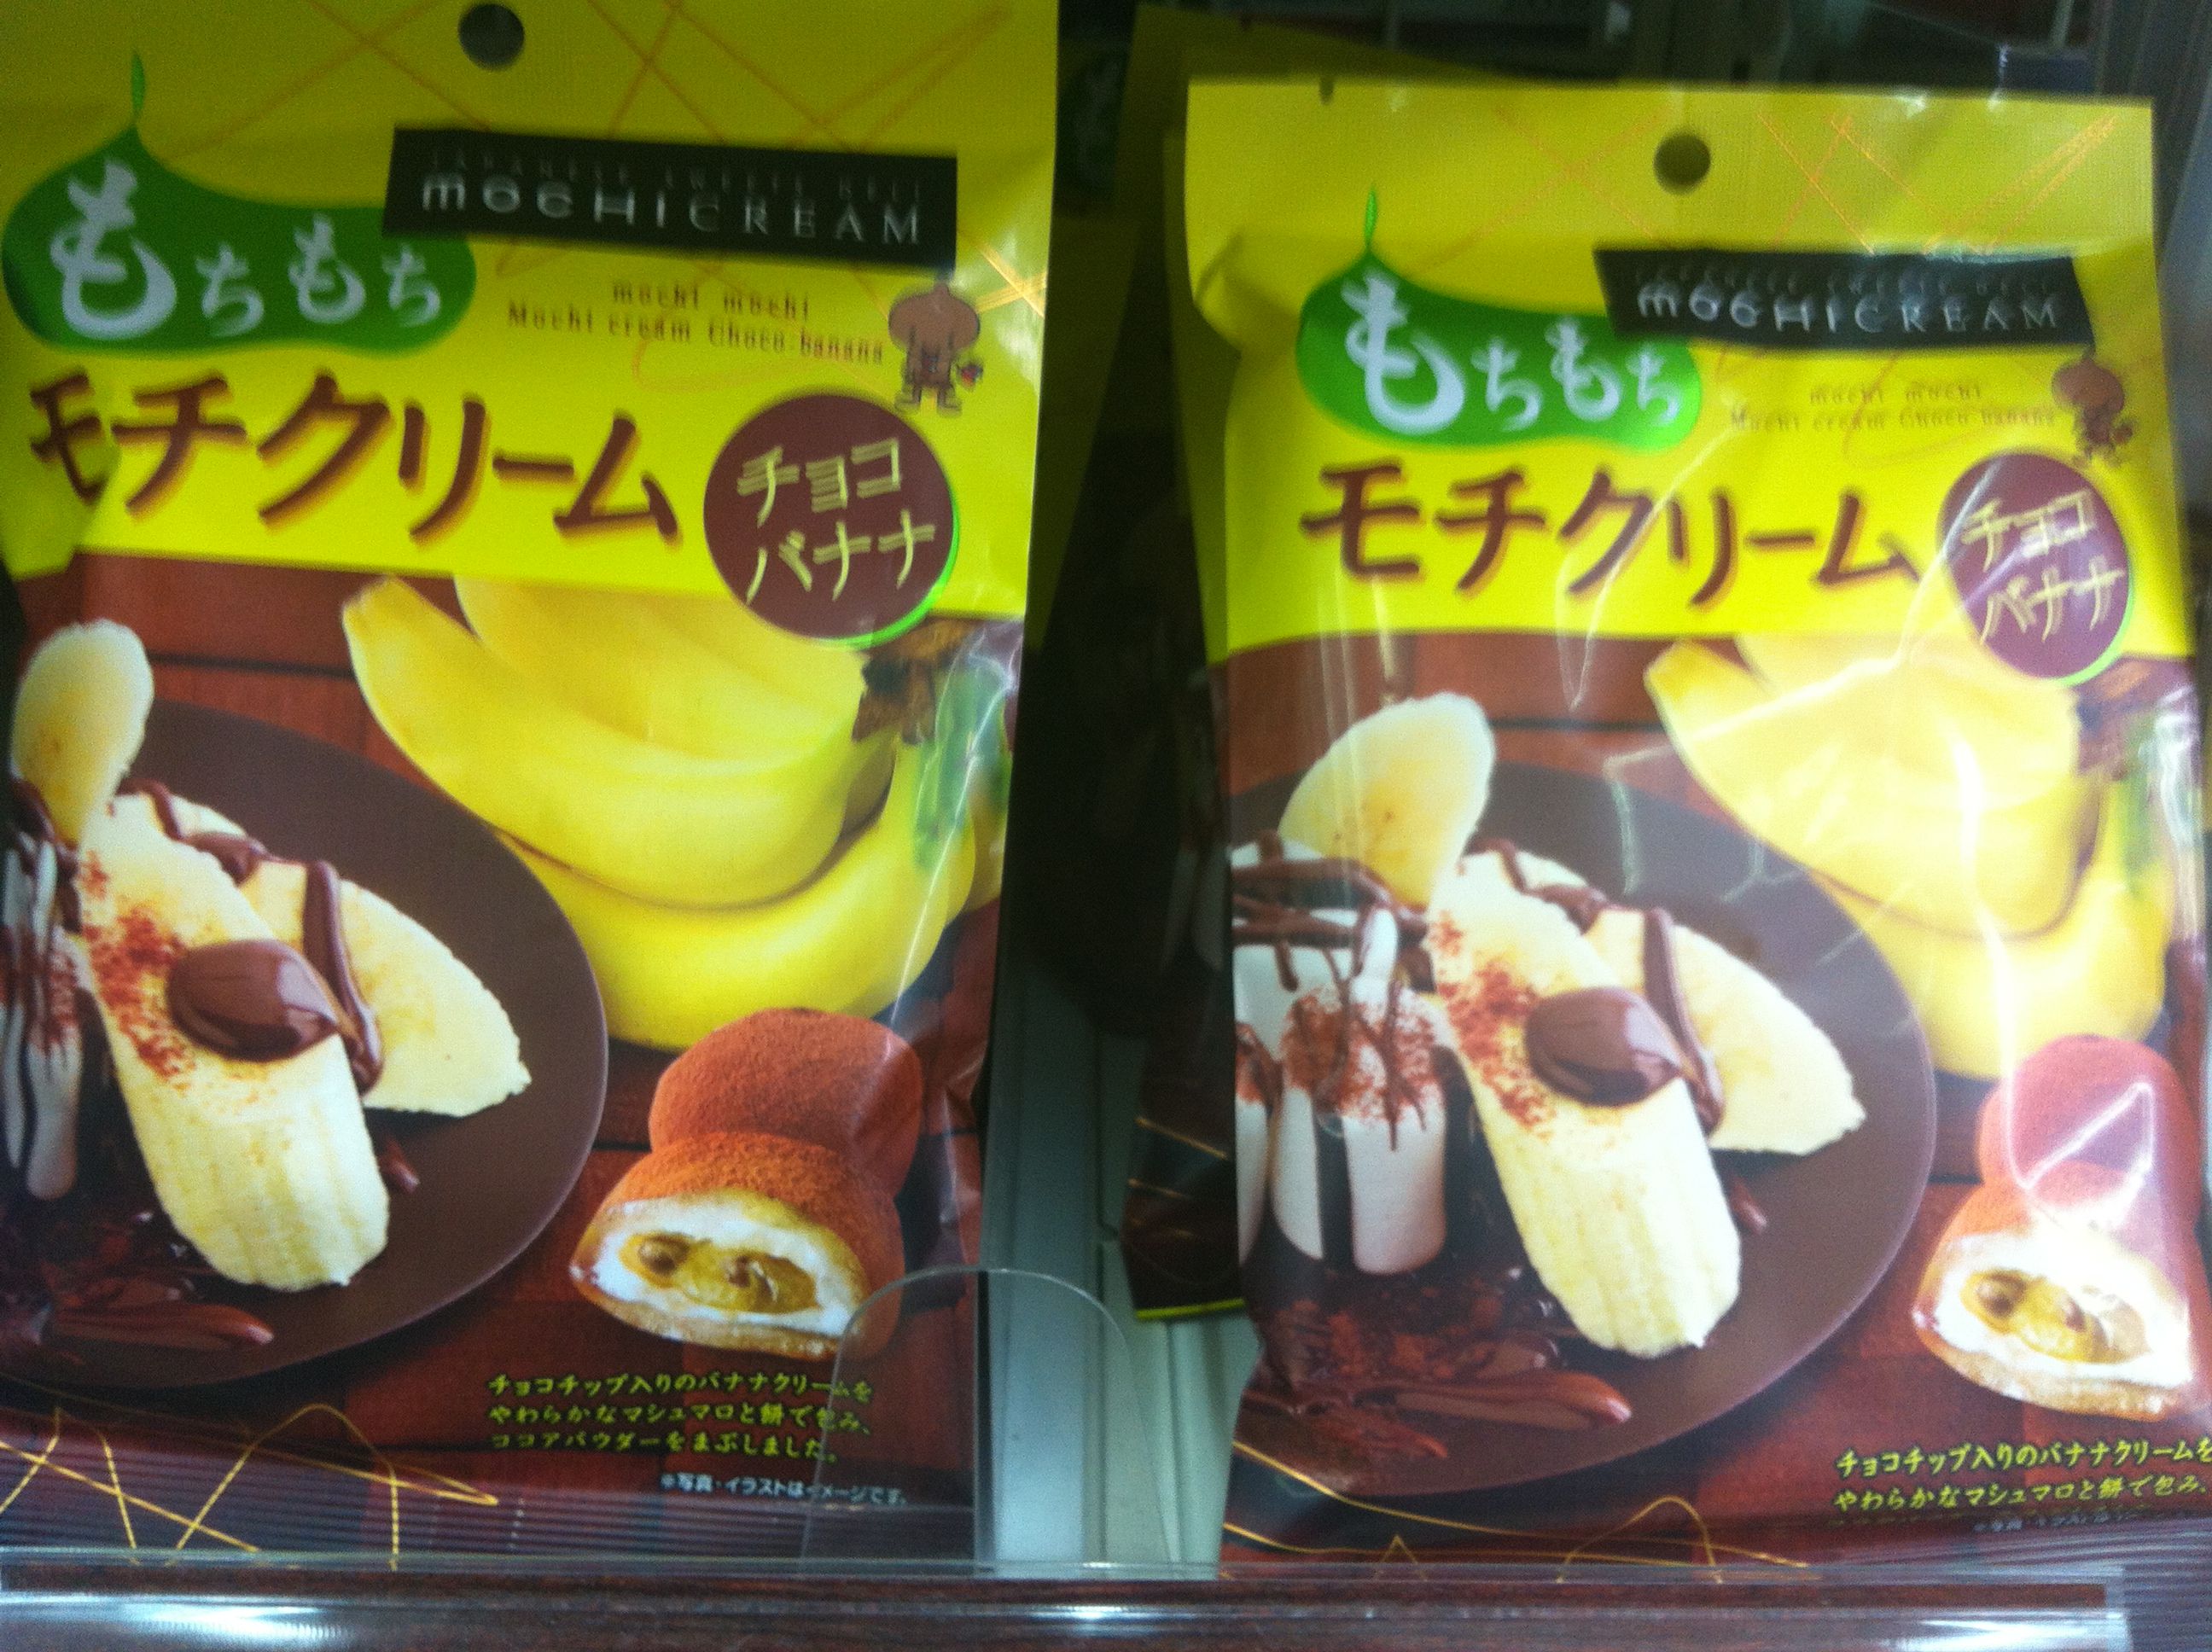 Chocolate and banana are wrapped in rice cake.